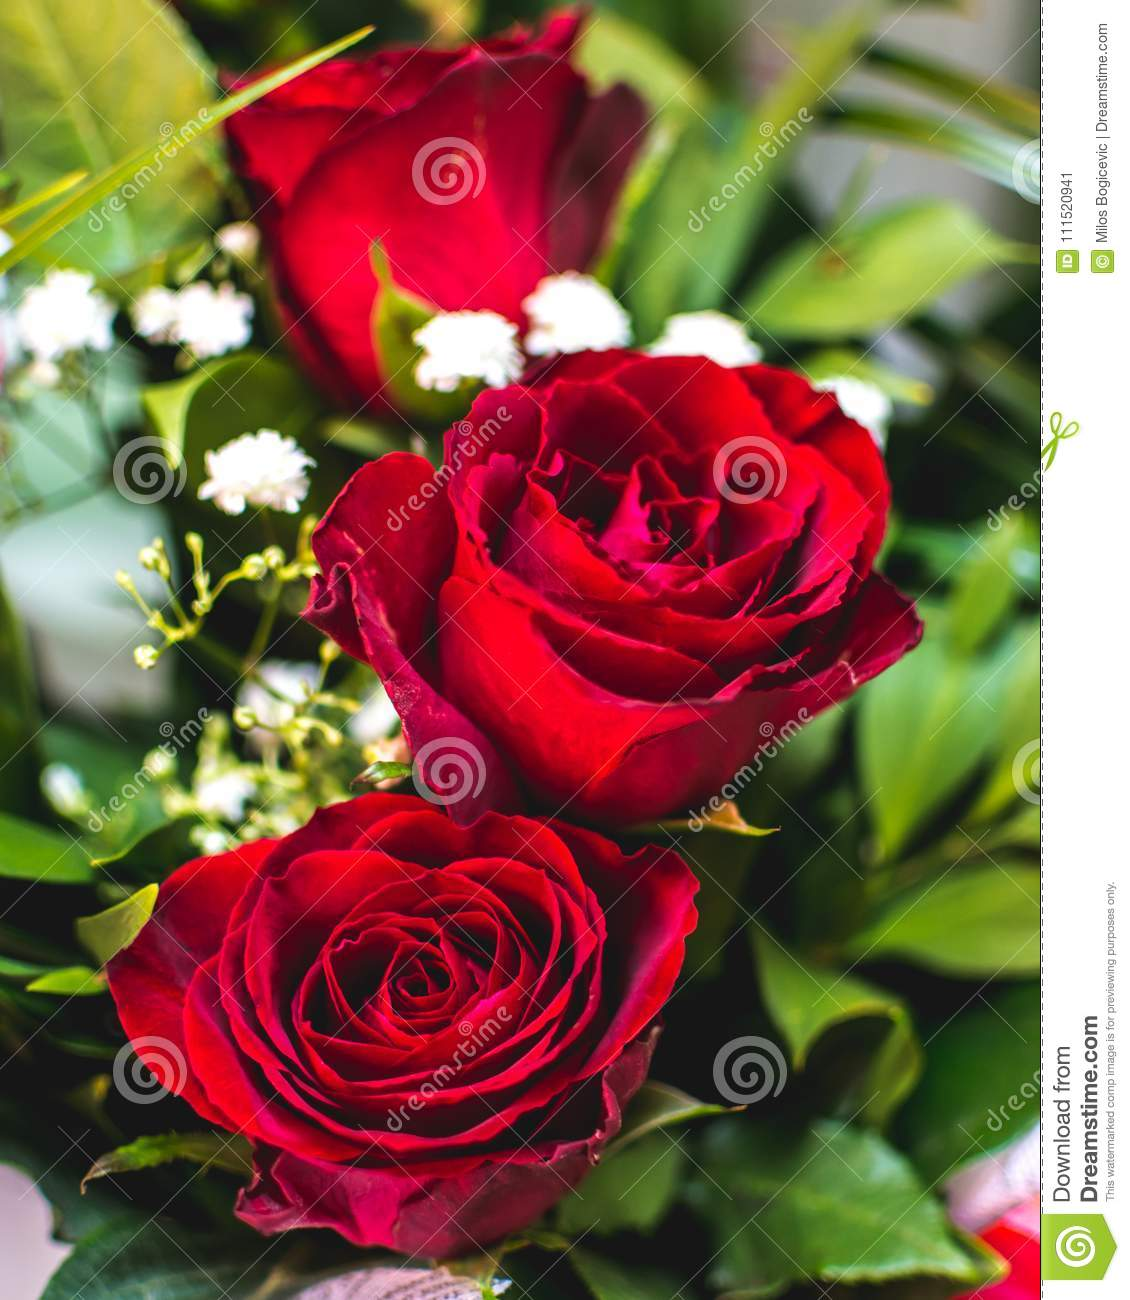 Love Garden Roses: Red Rose Flower. Sign Of Love. Summer Garden Flower. Stock